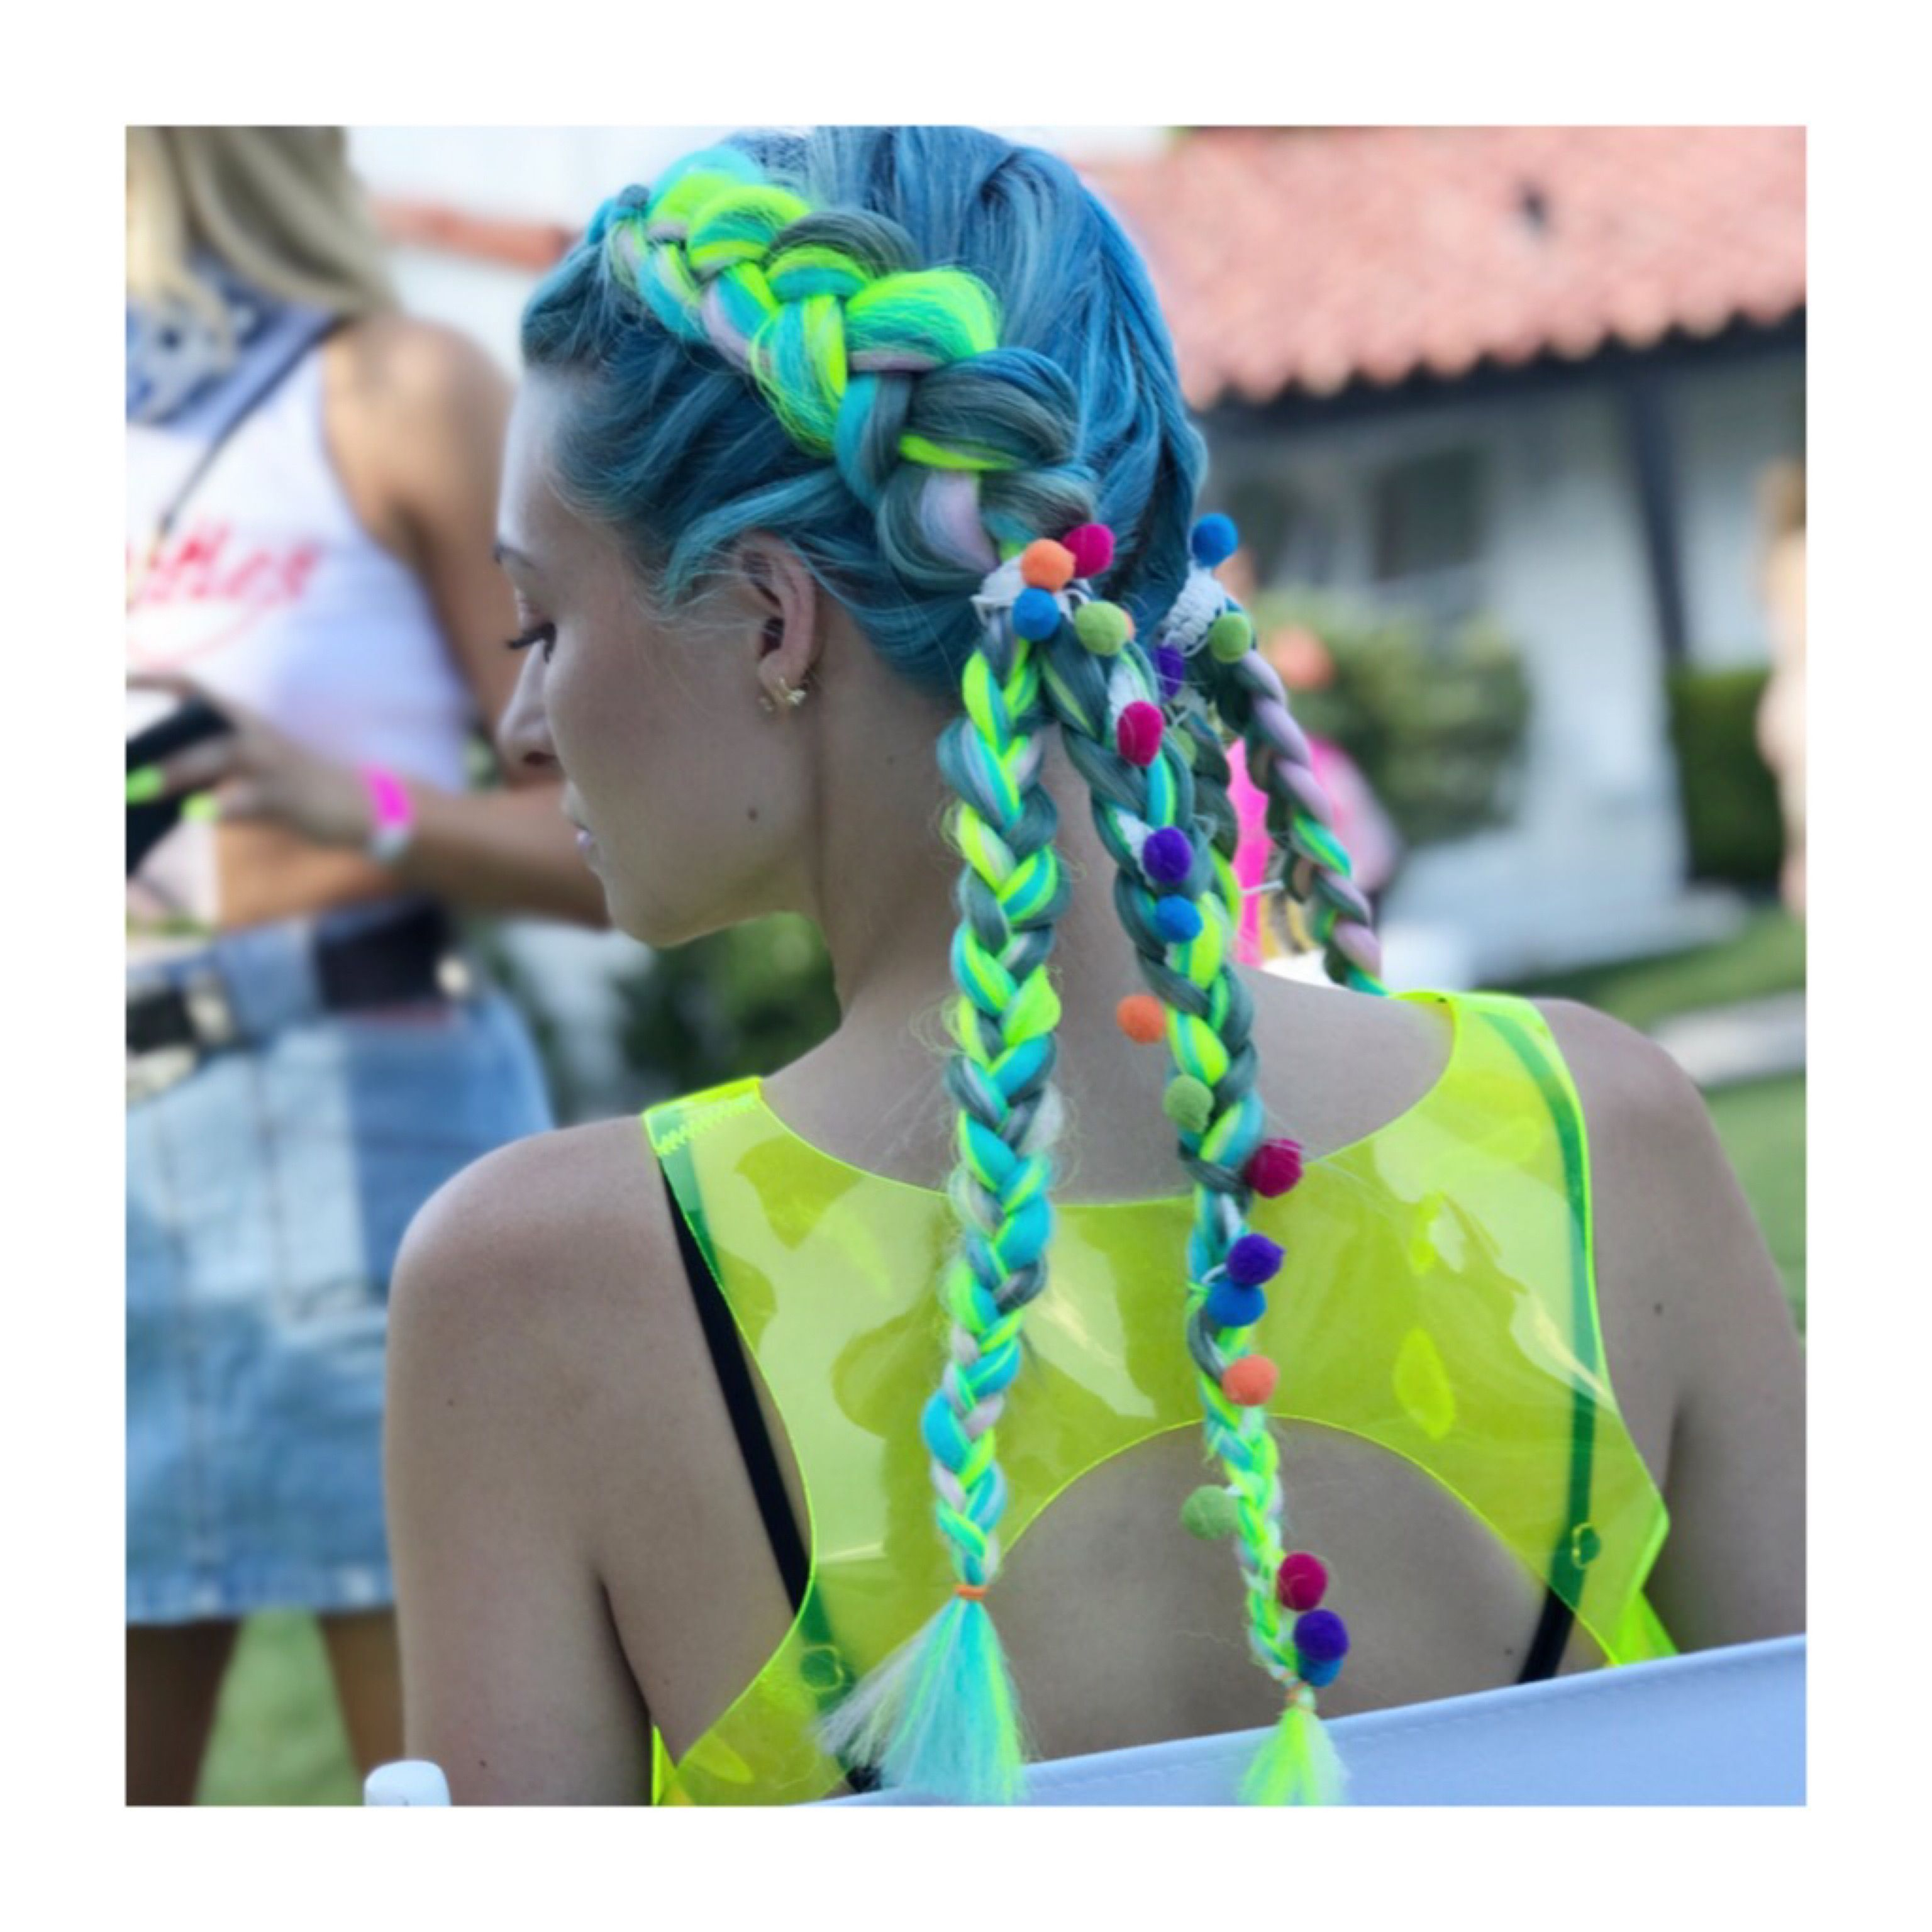 Well Known Blue Braided Festival Hairstyles Throughout Festival Coachella Hair Braids Blue Hair Pom Pom Braids (Gallery 13 of 20)